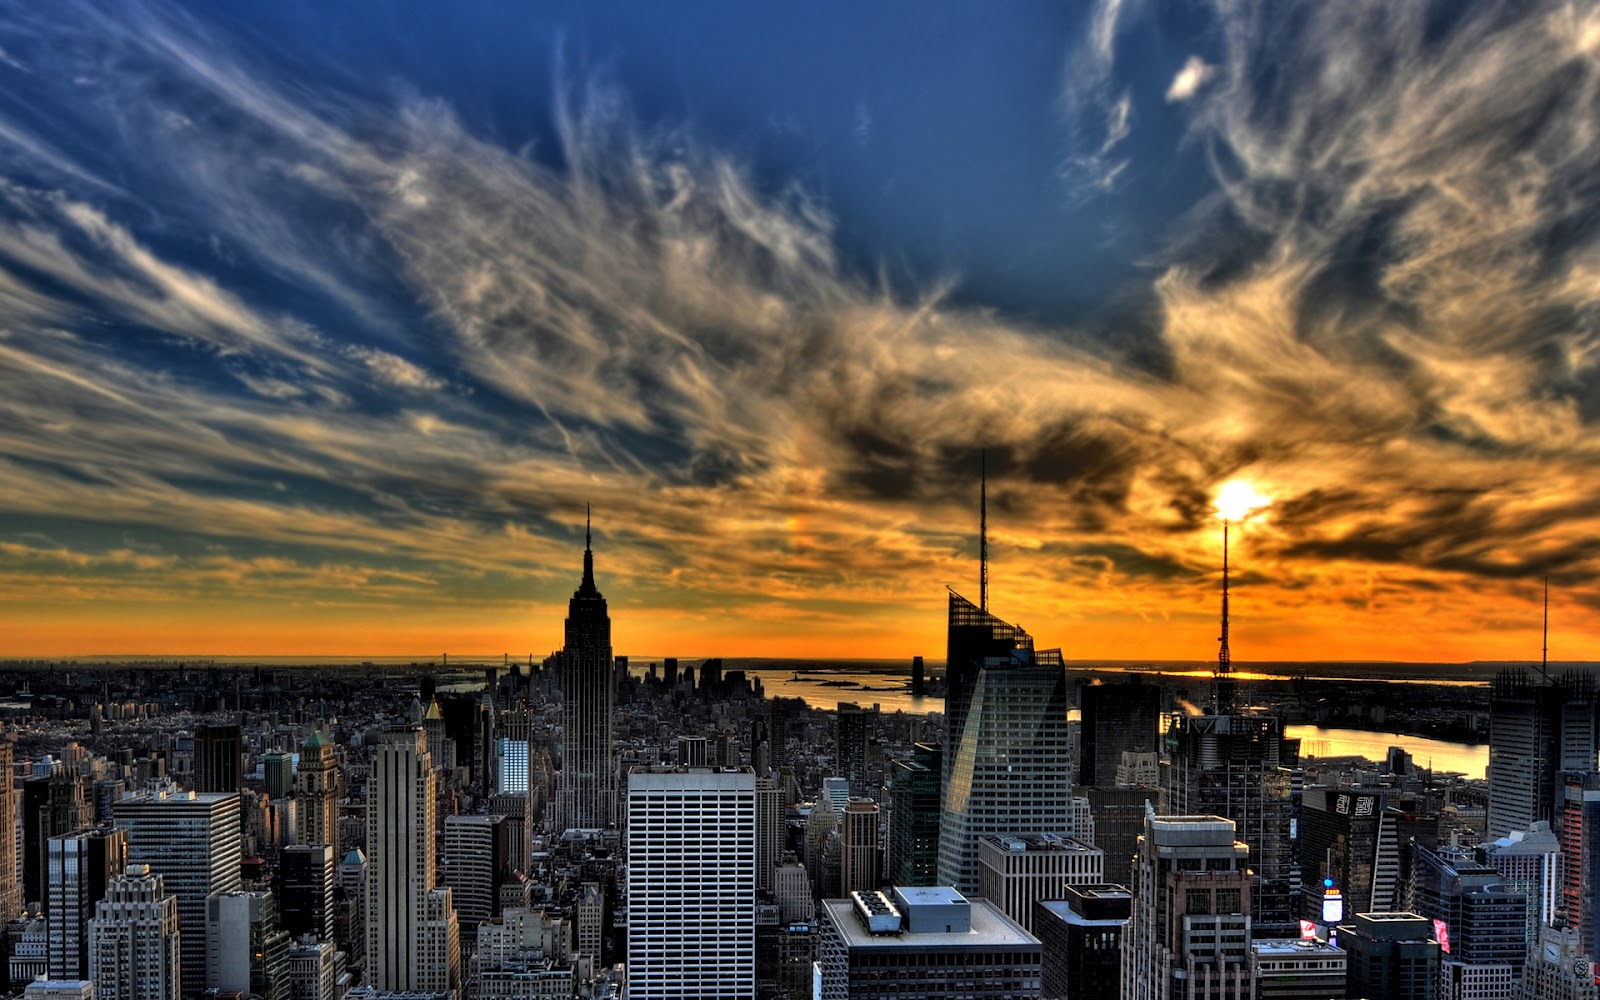 http://4.bp.blogspot.com/-o8L6N8cjrJ8/T58qItmukTI/AAAAAAAAbV0/C00SmgPdHSA/s1600/New-York-NYC-USA-Wallpapers_05.jpg